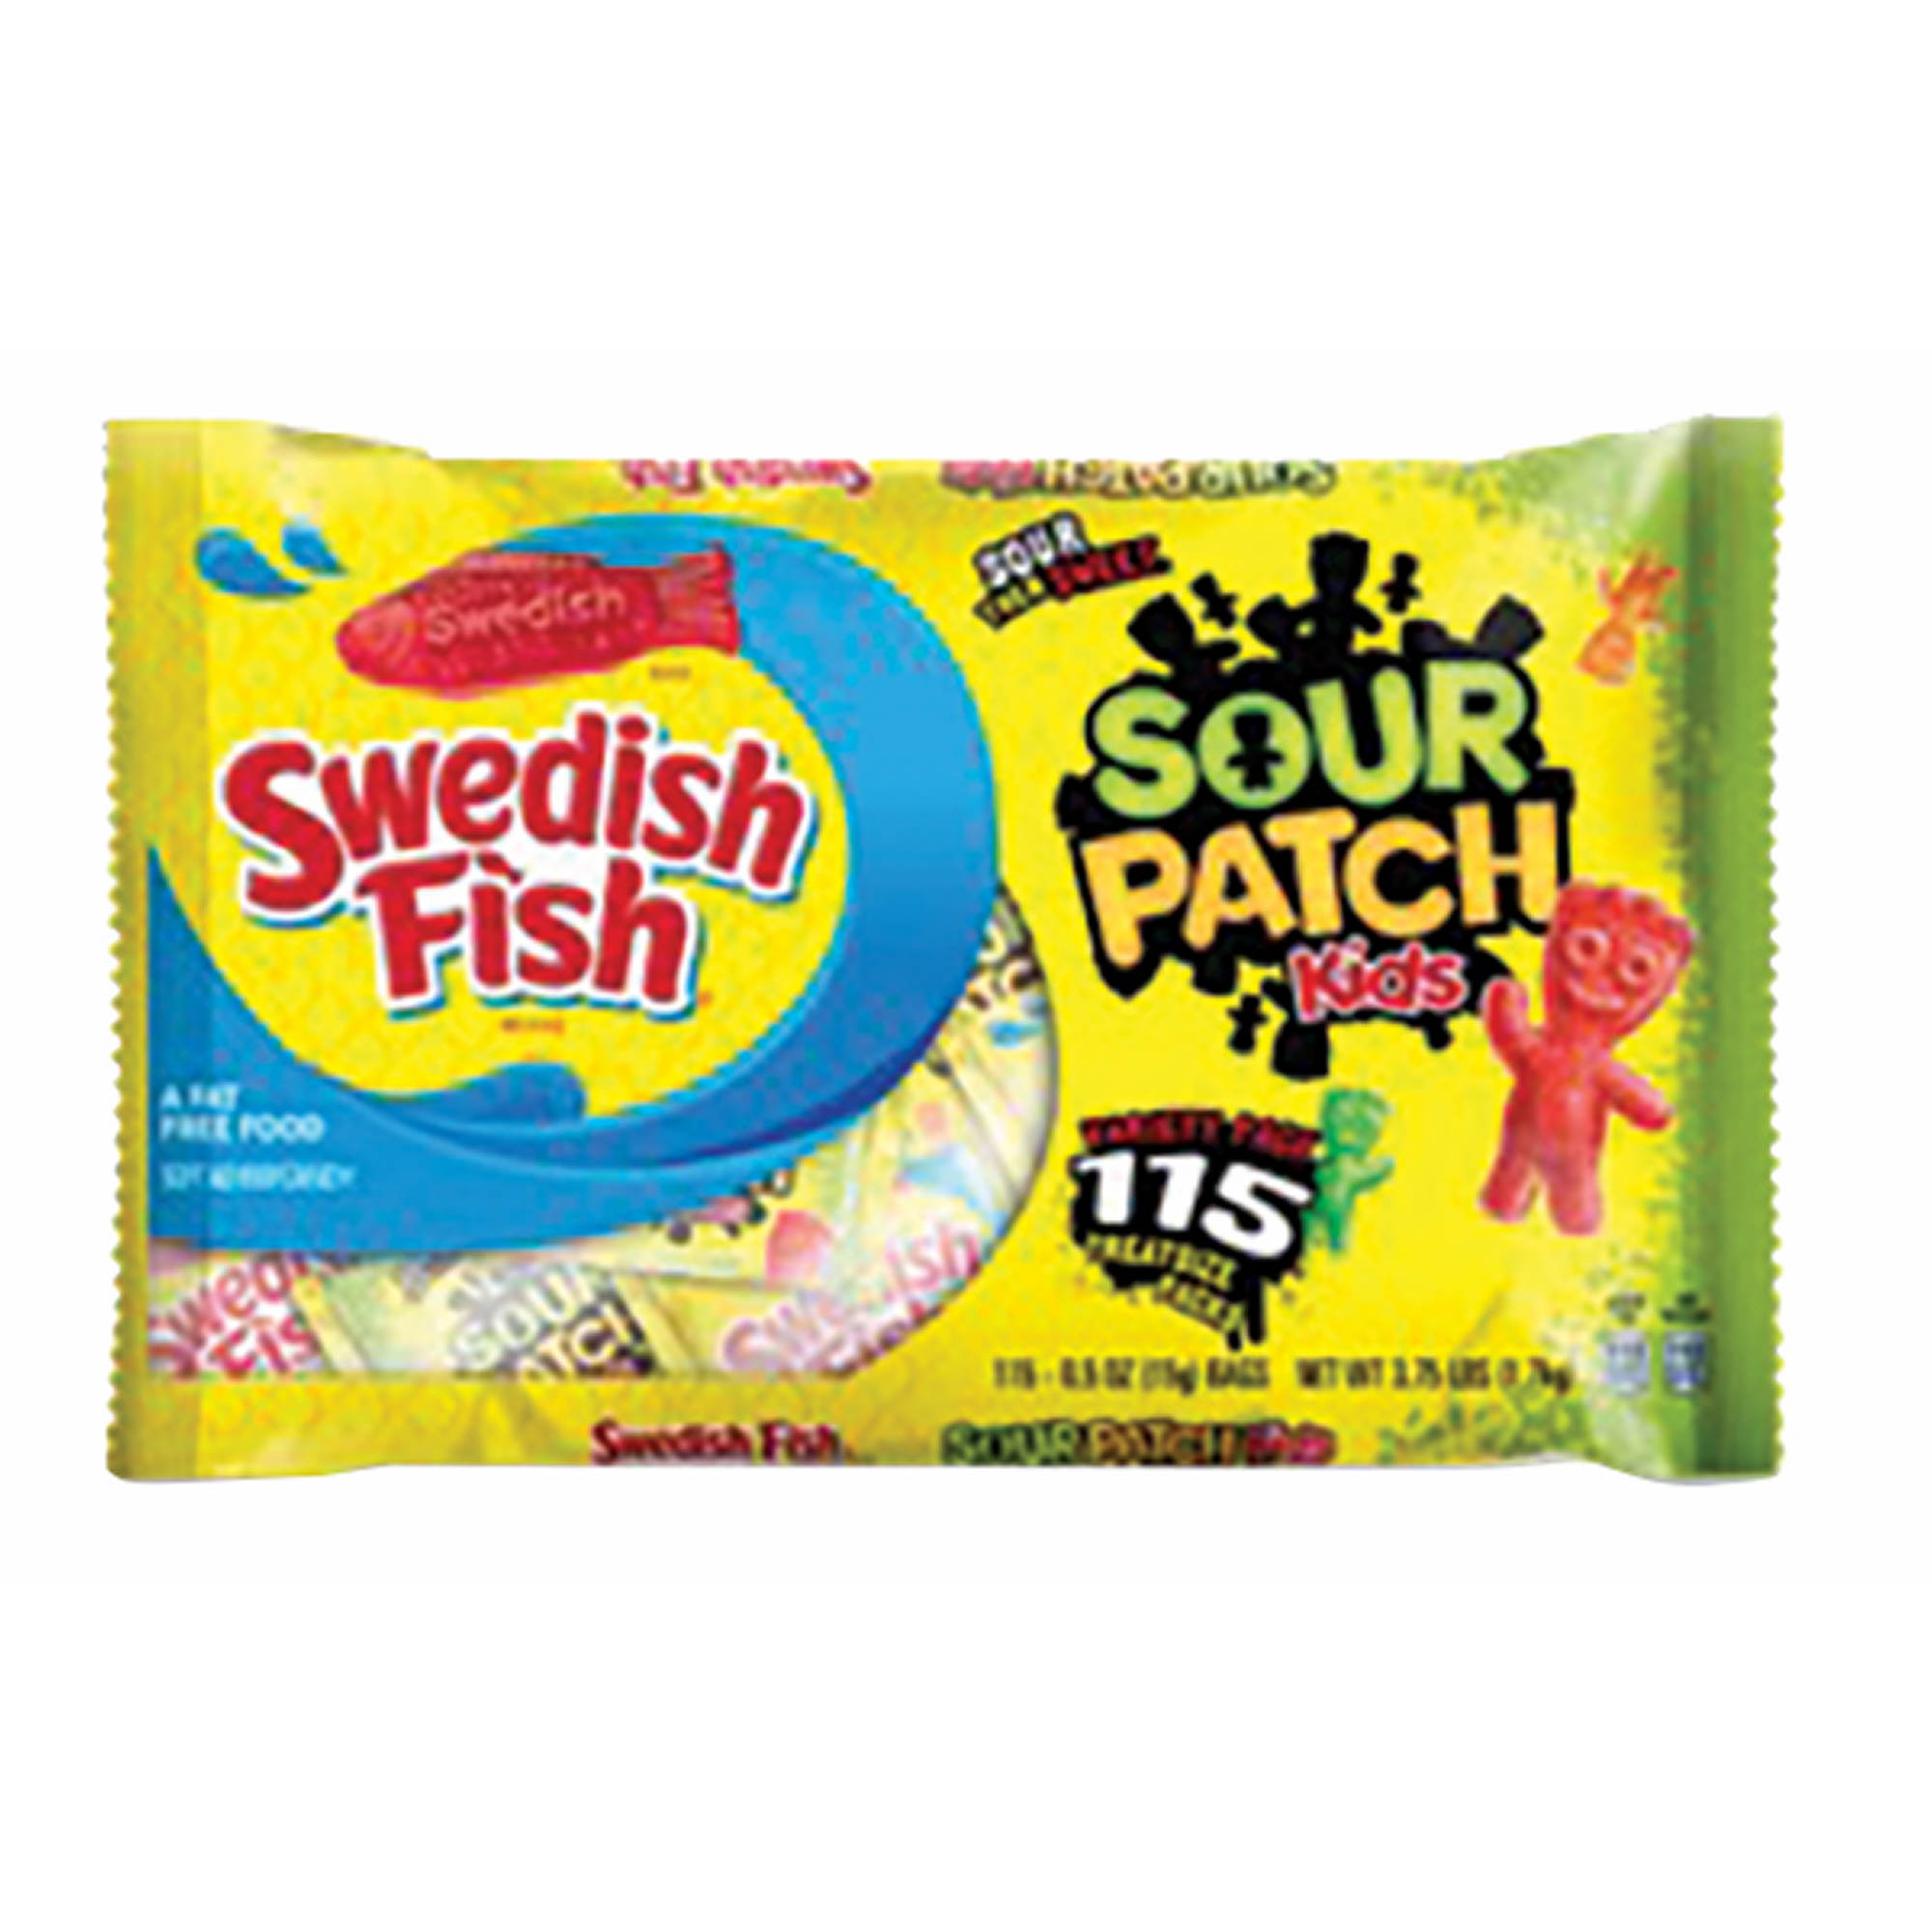 sour patch kids candy and swedish fish candy variety pack